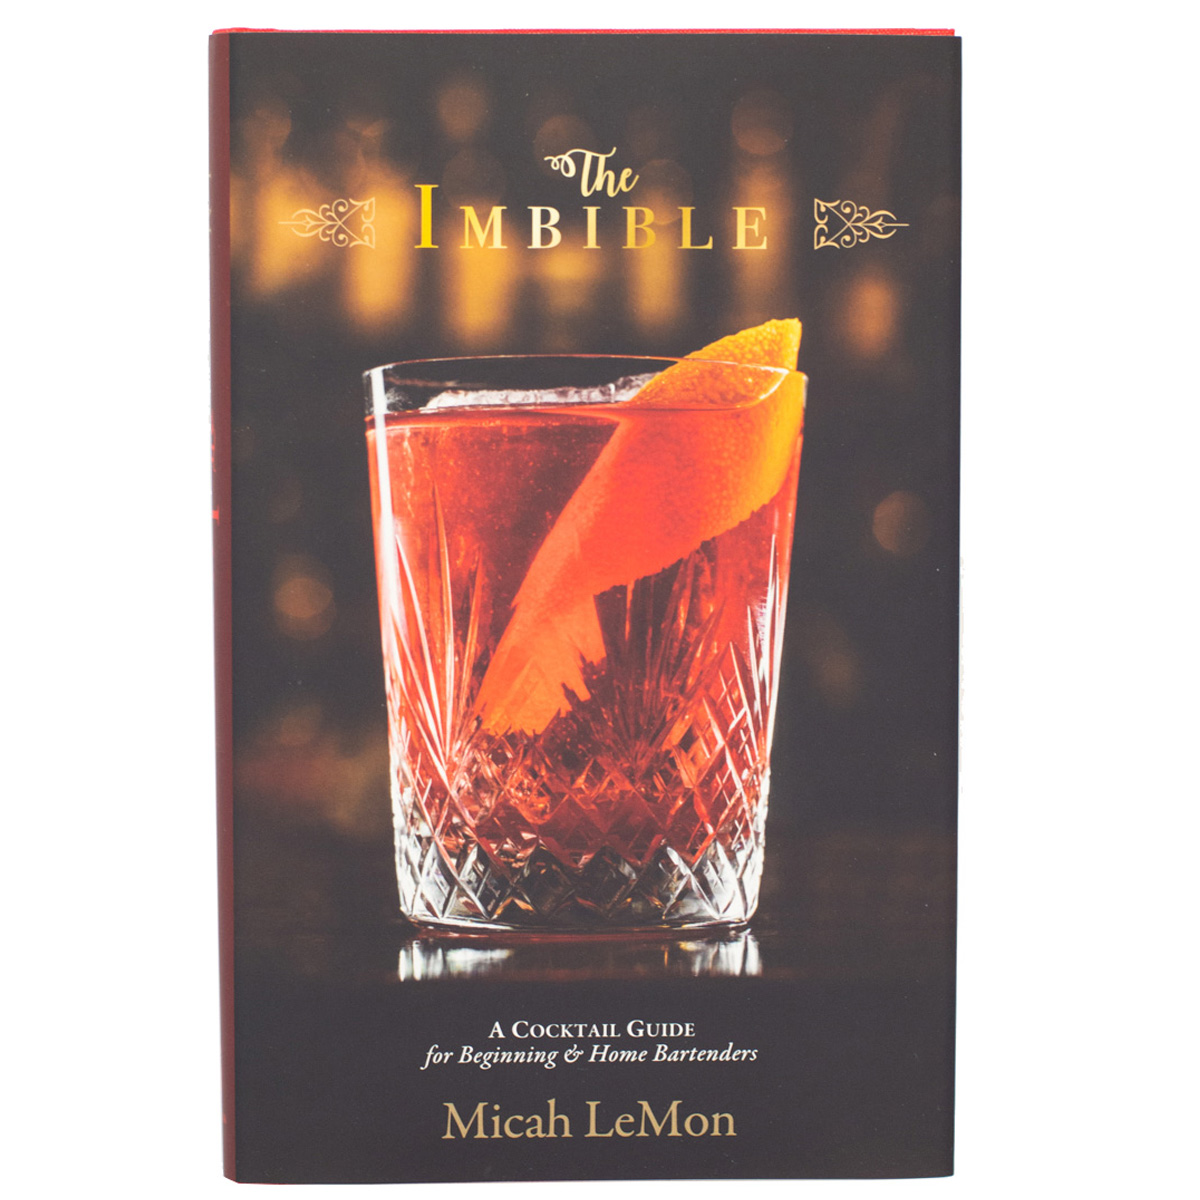 The Imbible cocktail book